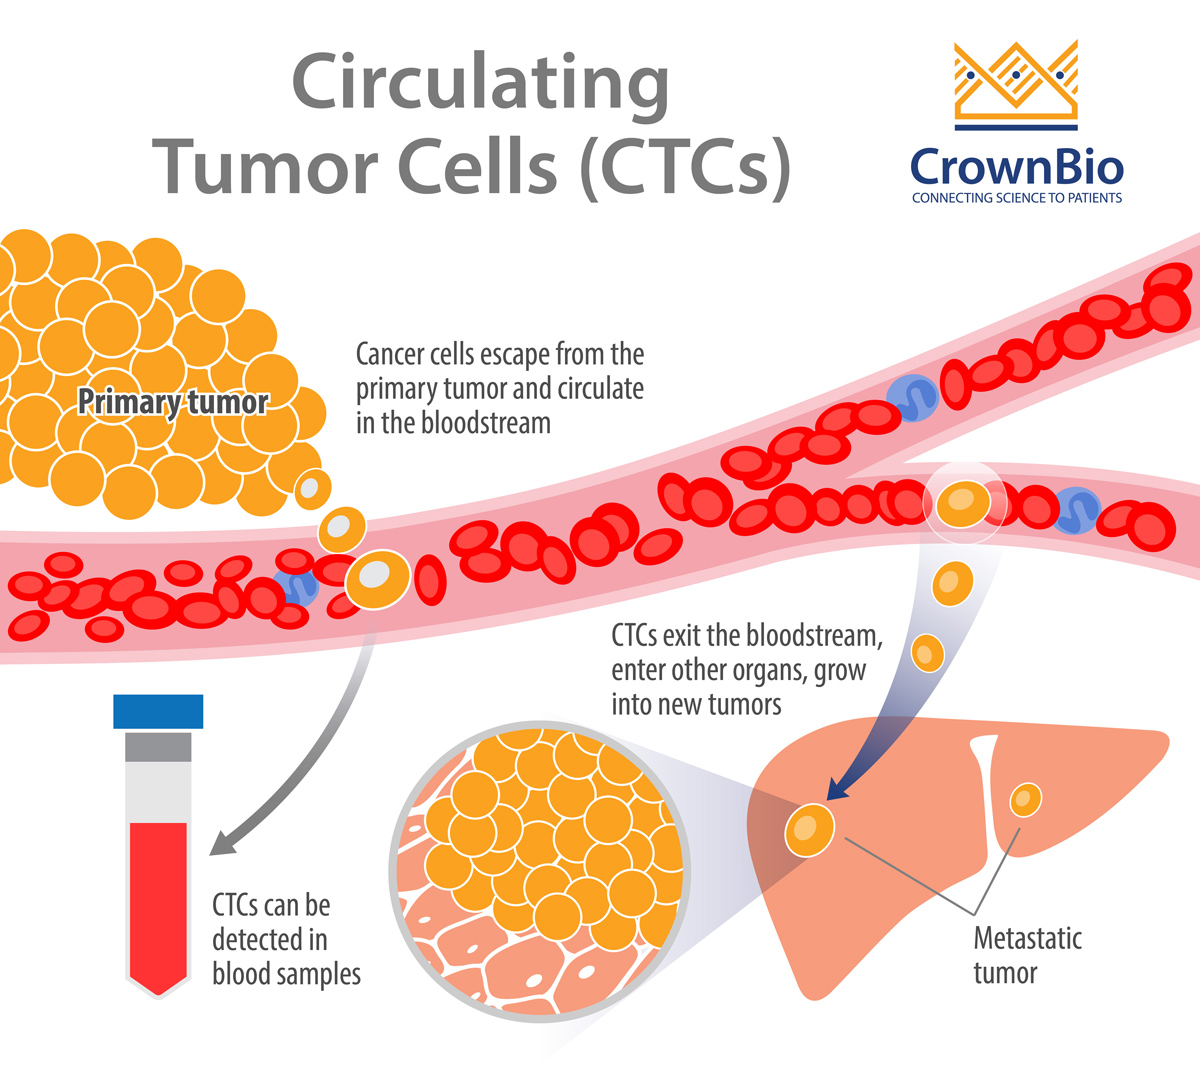 Circulating Tumor Cells in Preclinical Mouse Models of Metastasis